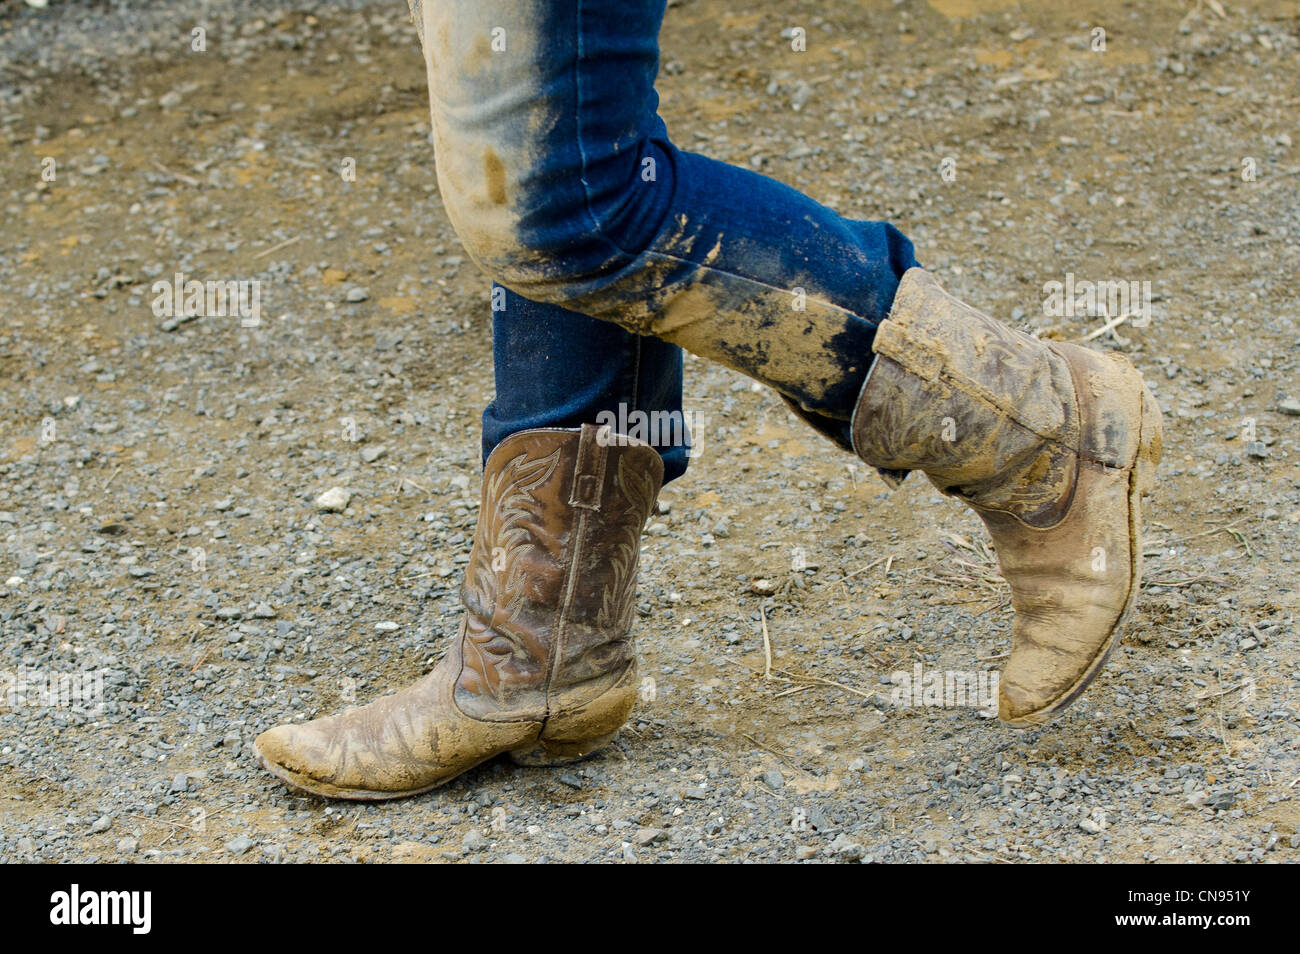 Cowgirl wearing muddy boots in a rodeo show stock photo for Dirty foot mud ranch